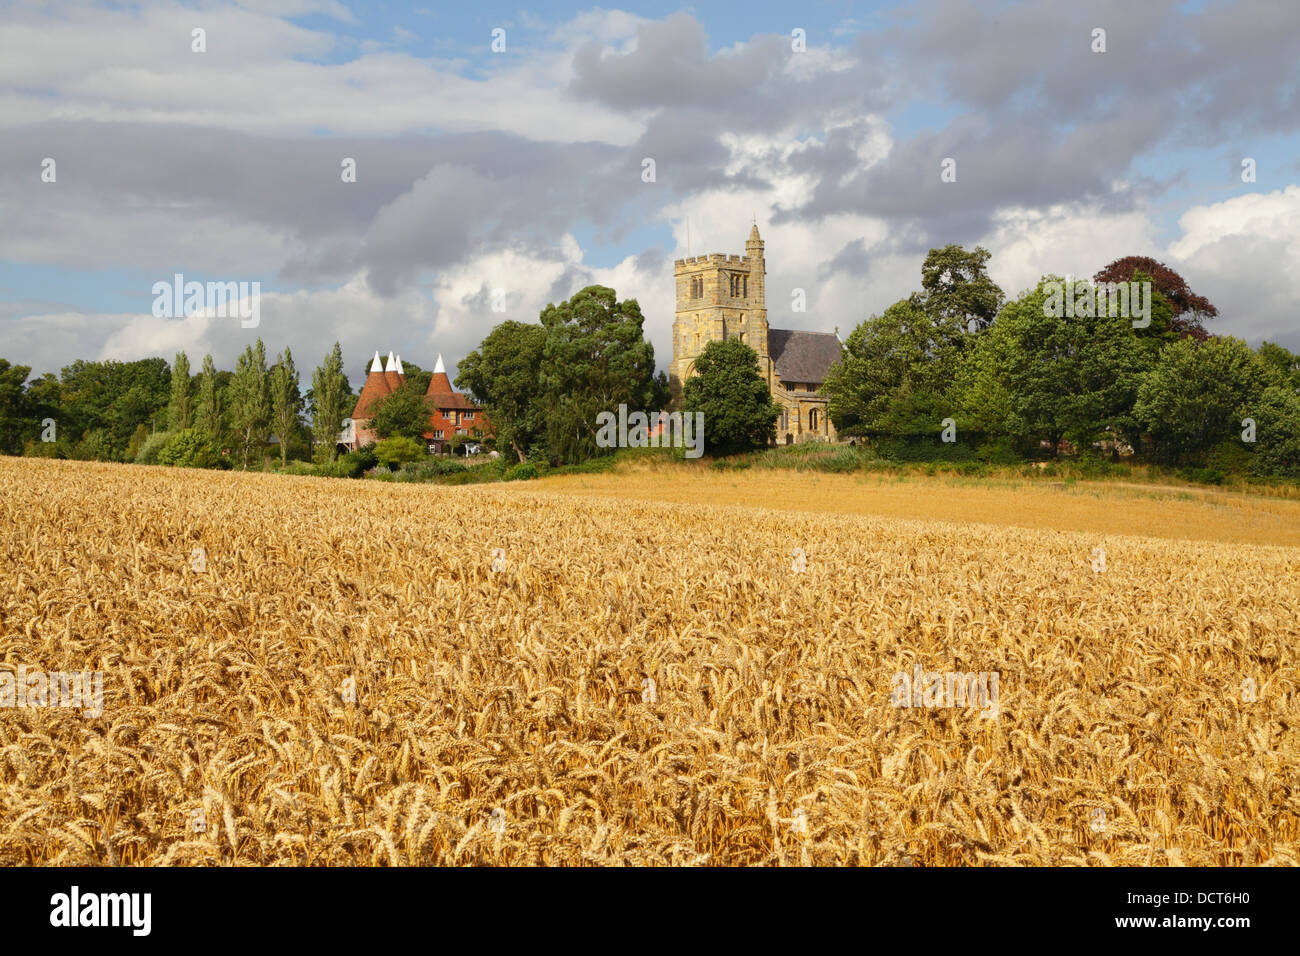 Harvest time in Kent UK. Horsmonden Church and Oast Houses, Kent, England, UK in Wealden Countryside - Stock Image